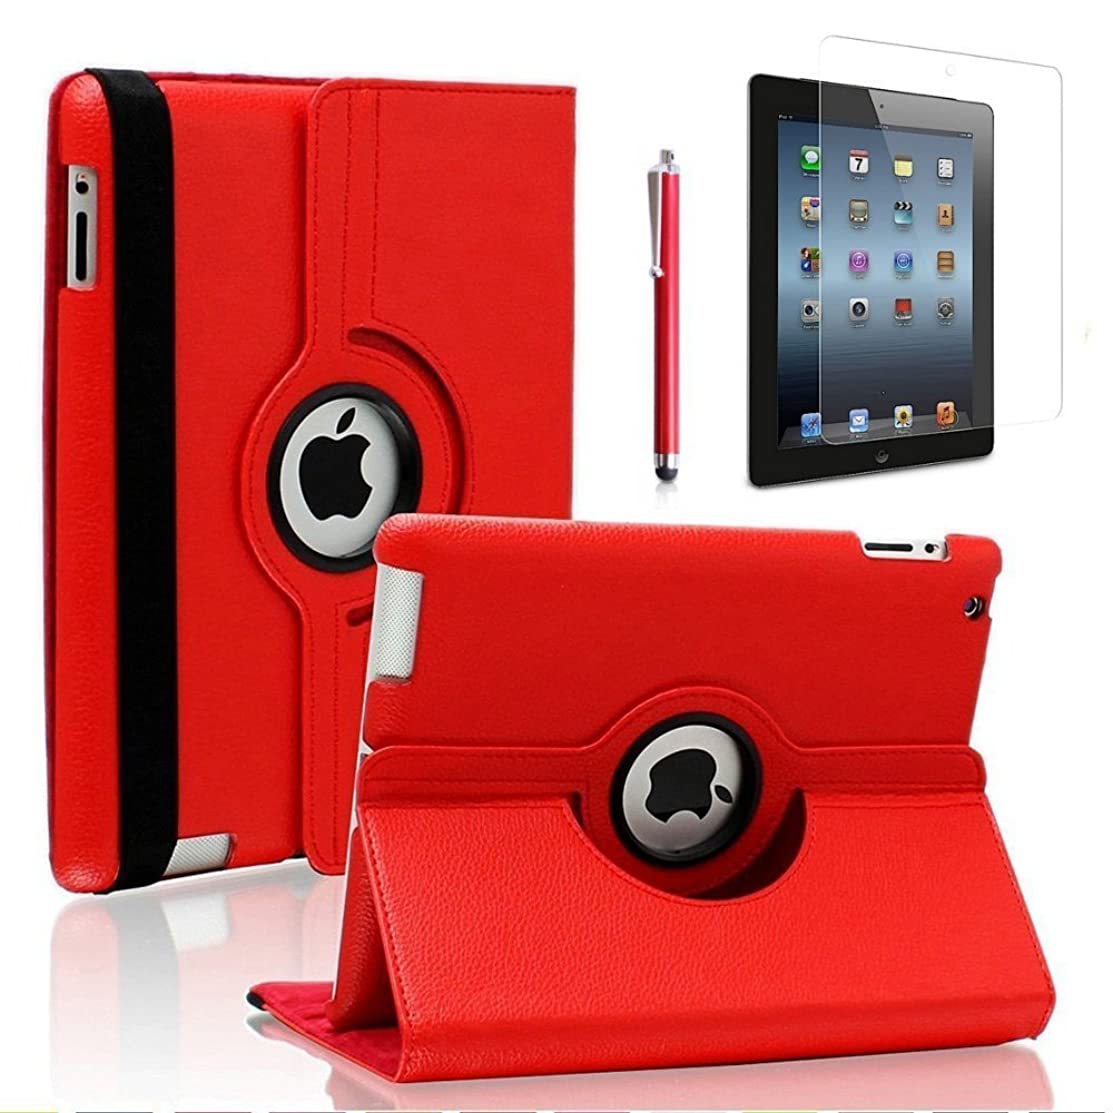 Zeox 360 Degree Rotating PU Leather iPad 4 Case with Screen Protector Cover & Stylus: Multi-angle Stand Folio Cover with Smart Wake Up Sleep for Apple iPad 2/iPad 3/iPad 4 - Red